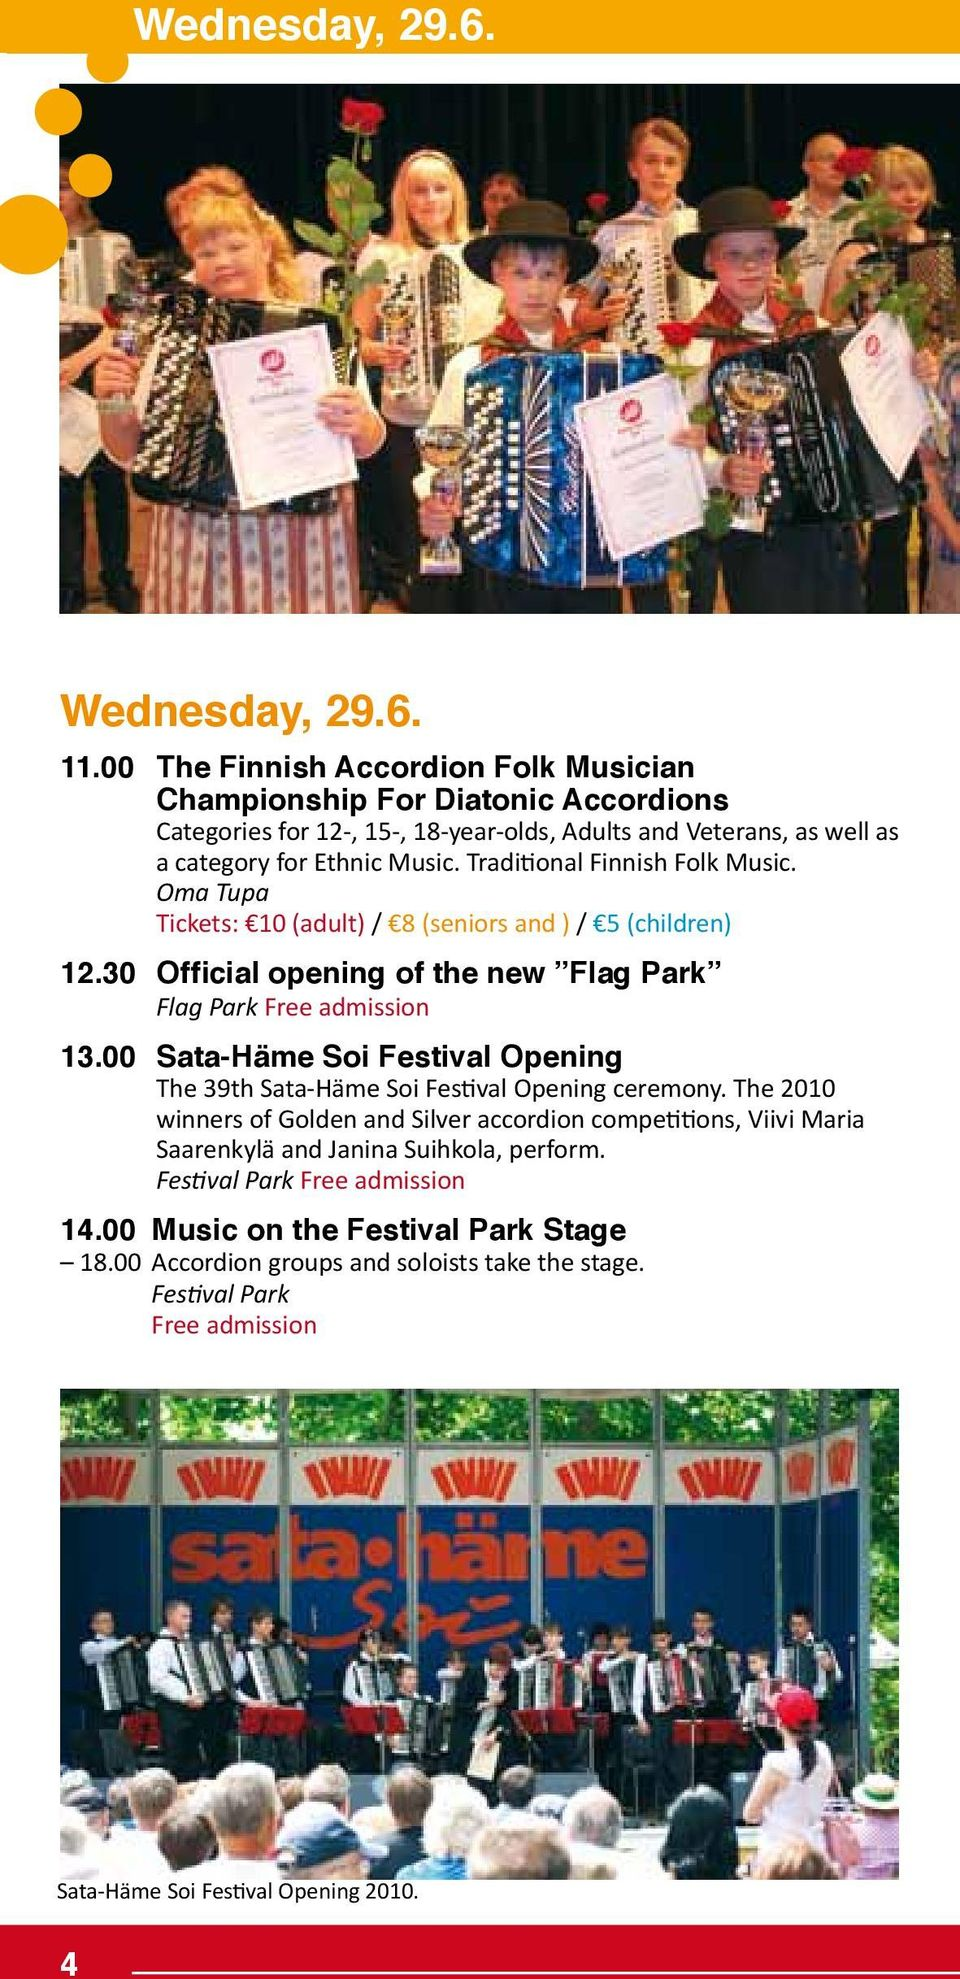 Traditional Finnish Folk Music. Oma Tupa Tickets: 10 (adult) / 8 (seniors and ) / 5 (children) 12.30 Official opening of the new Flag Park Flag Park Free admission 13.